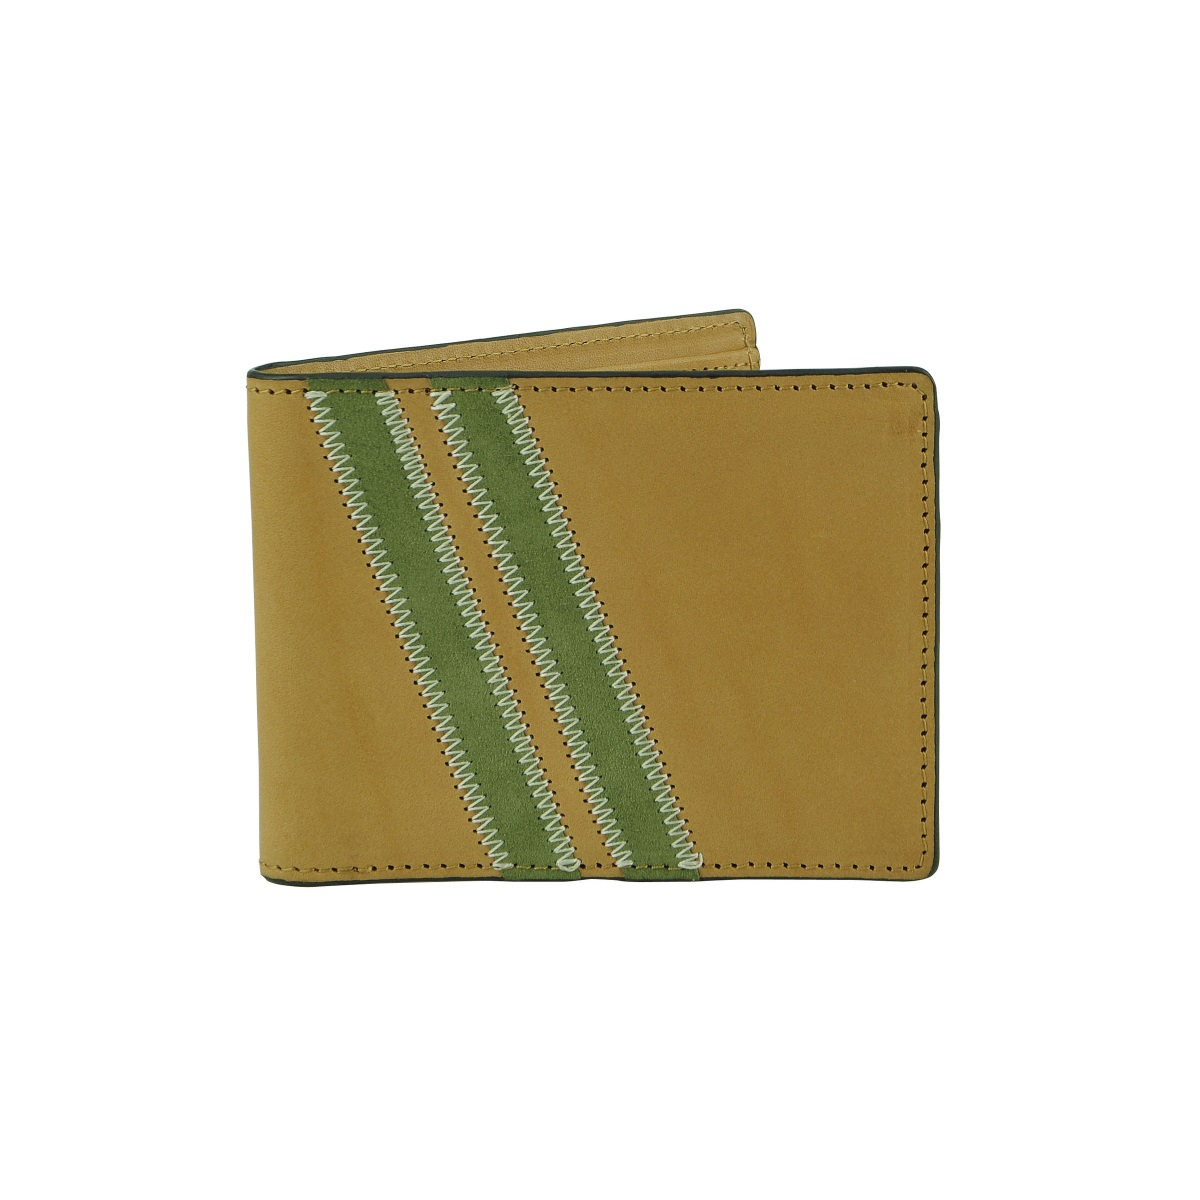 Zig Zag Roadster Leather Wallet - Tan